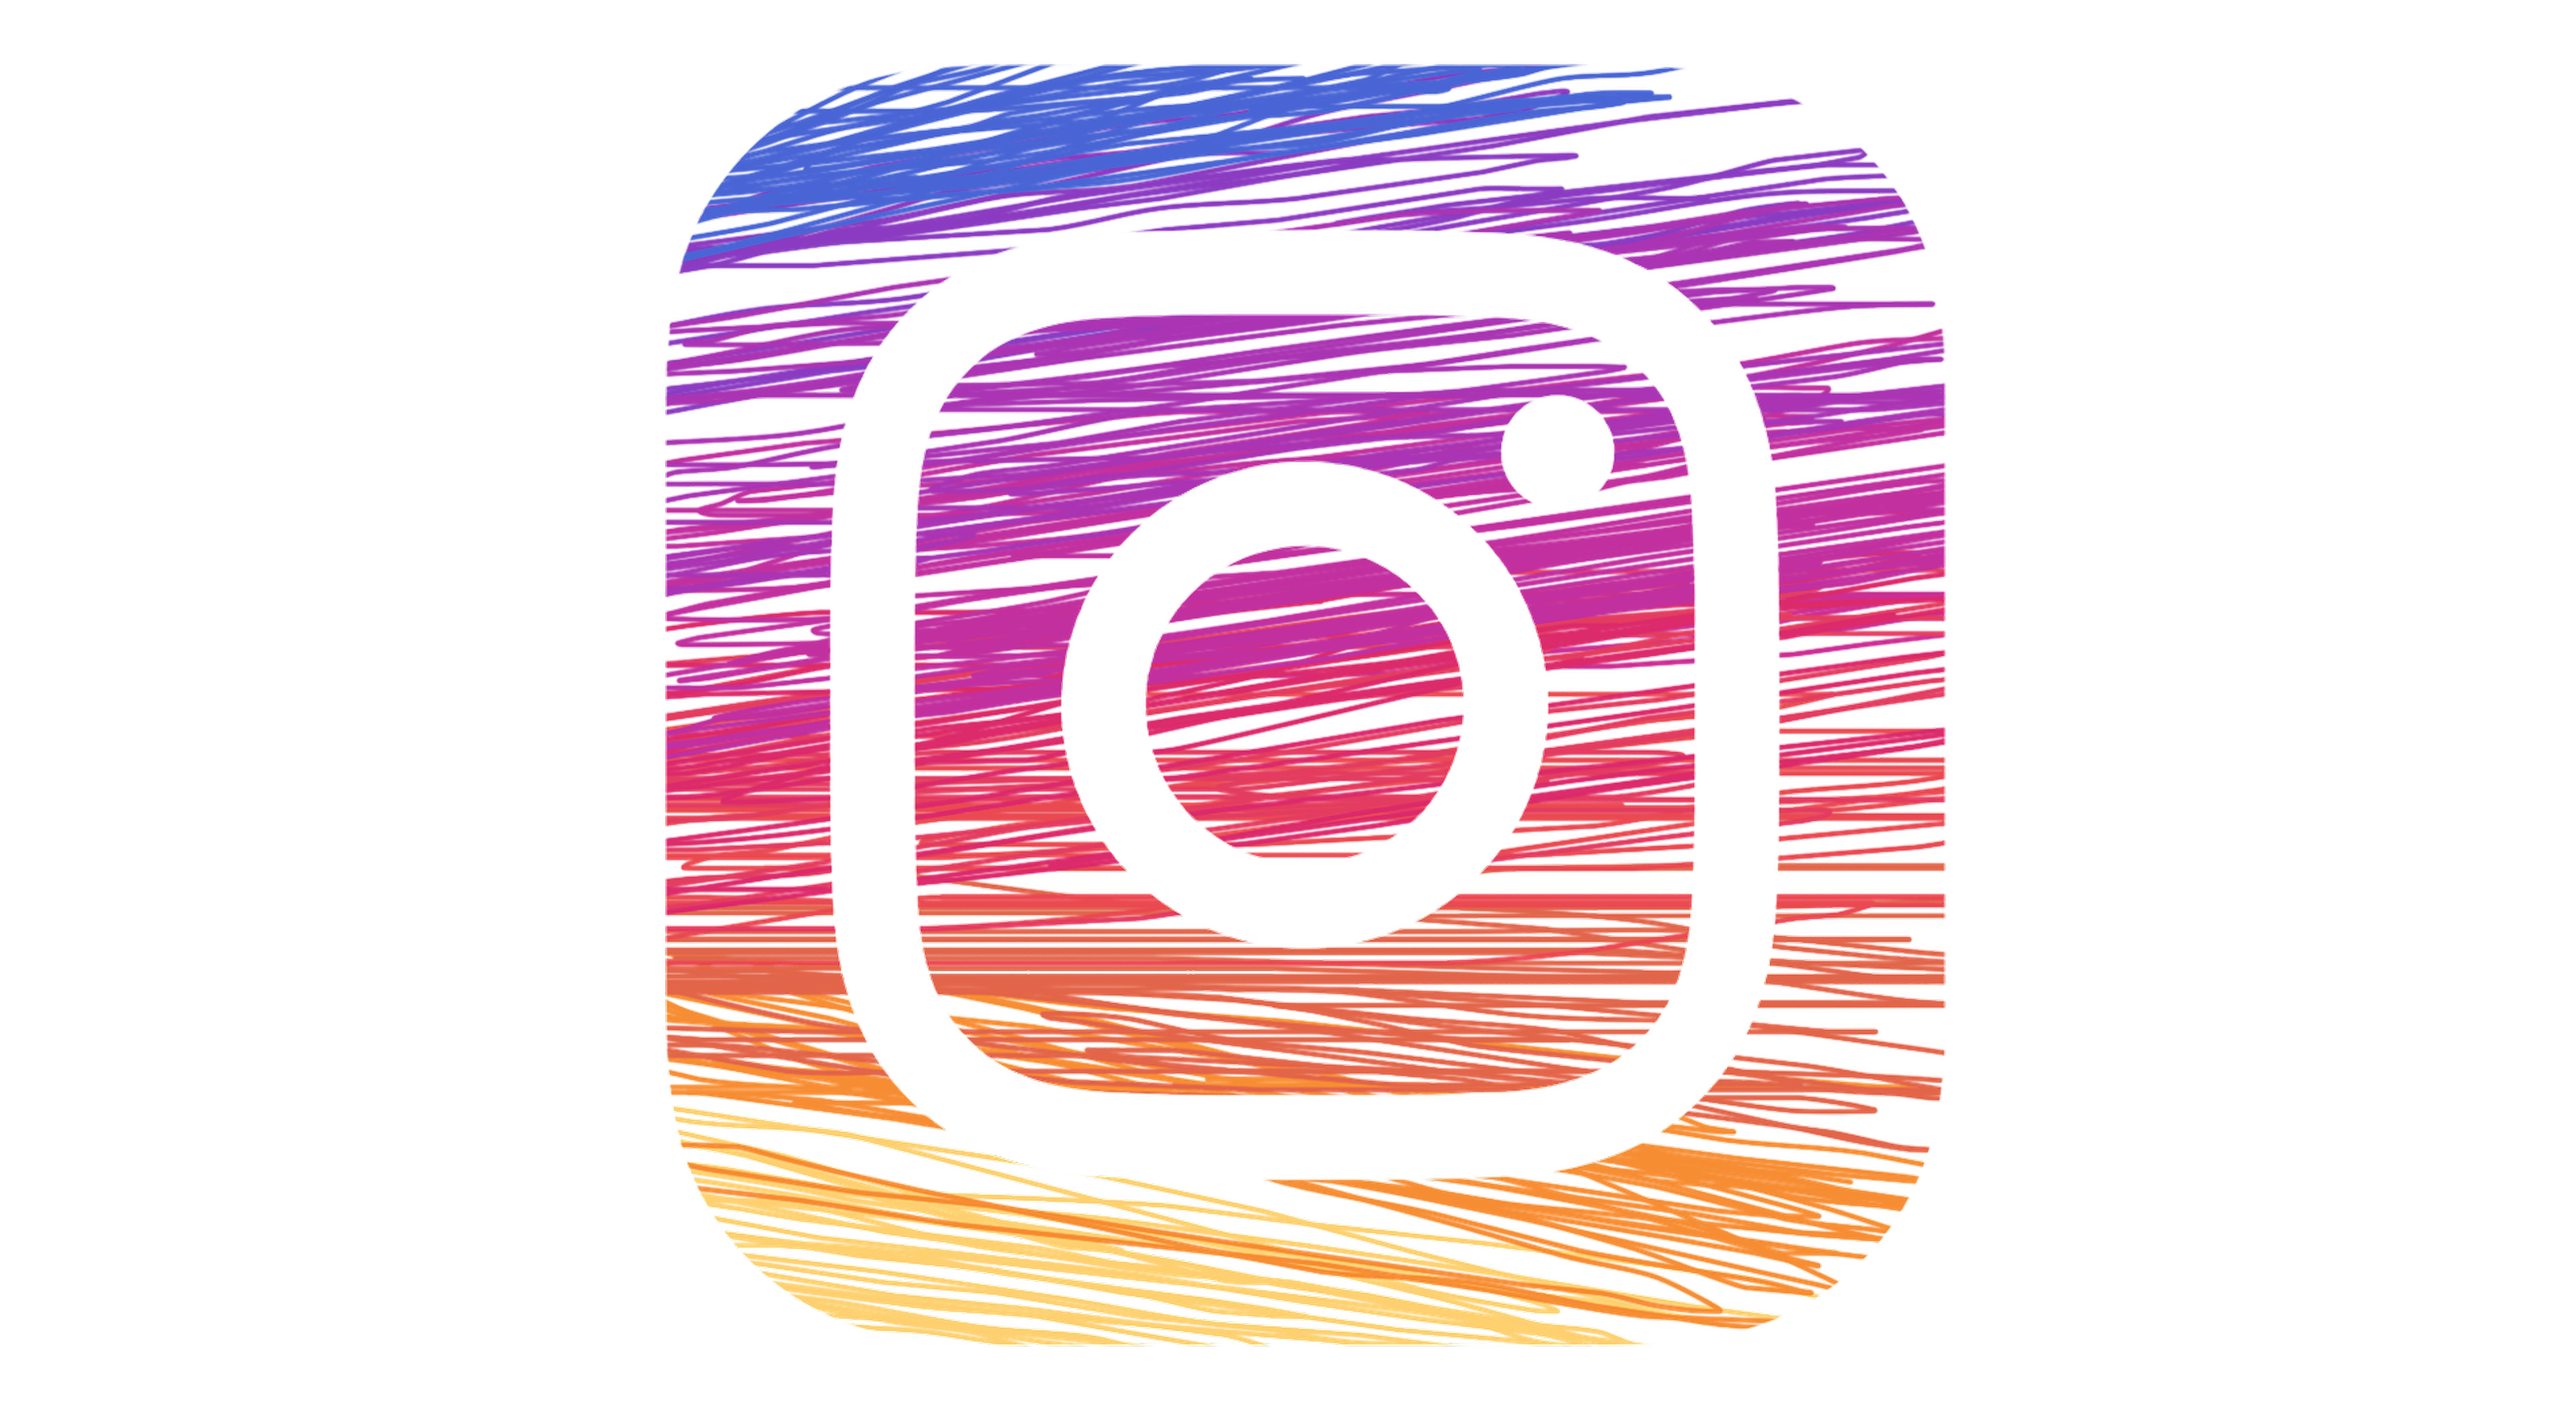 ig-logo-drawing